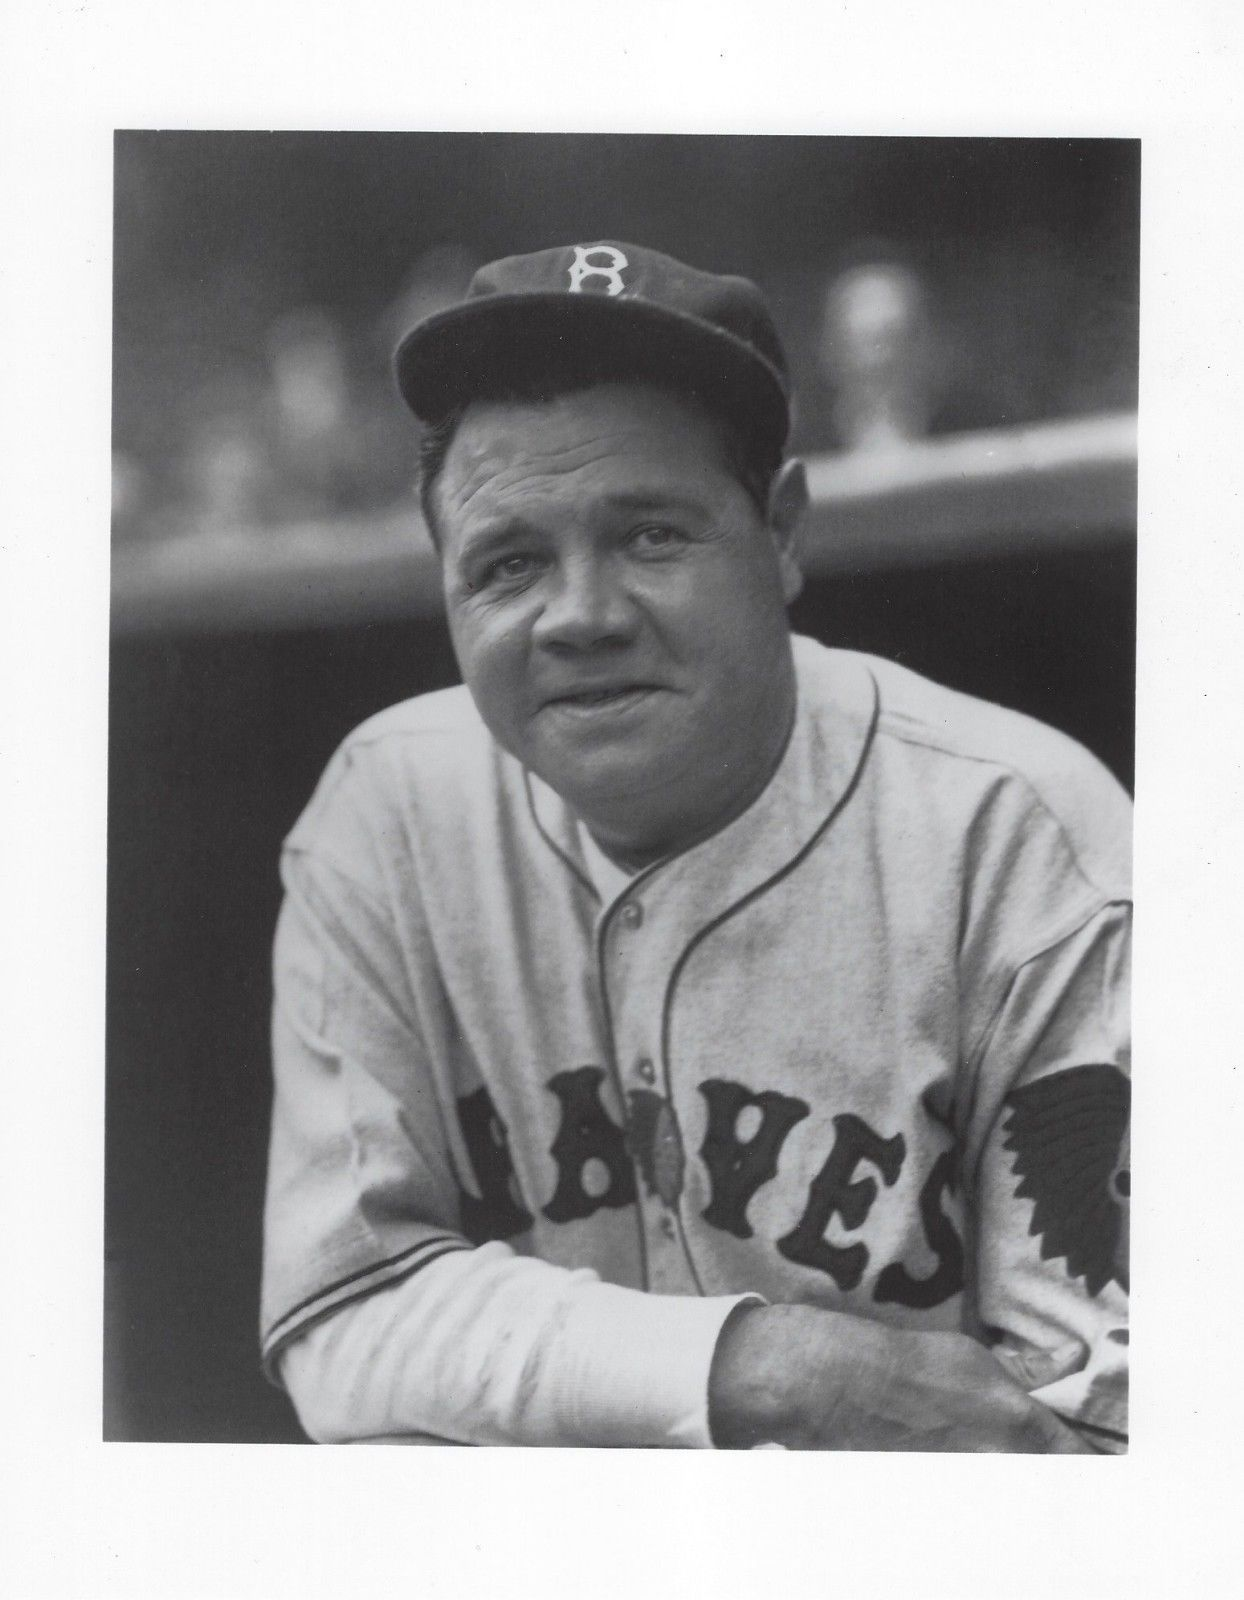 BABE RUTH 8X10 PHOTO BOSTON BRAVES BASEBALL PICTURE CLOSE UP - $3.95